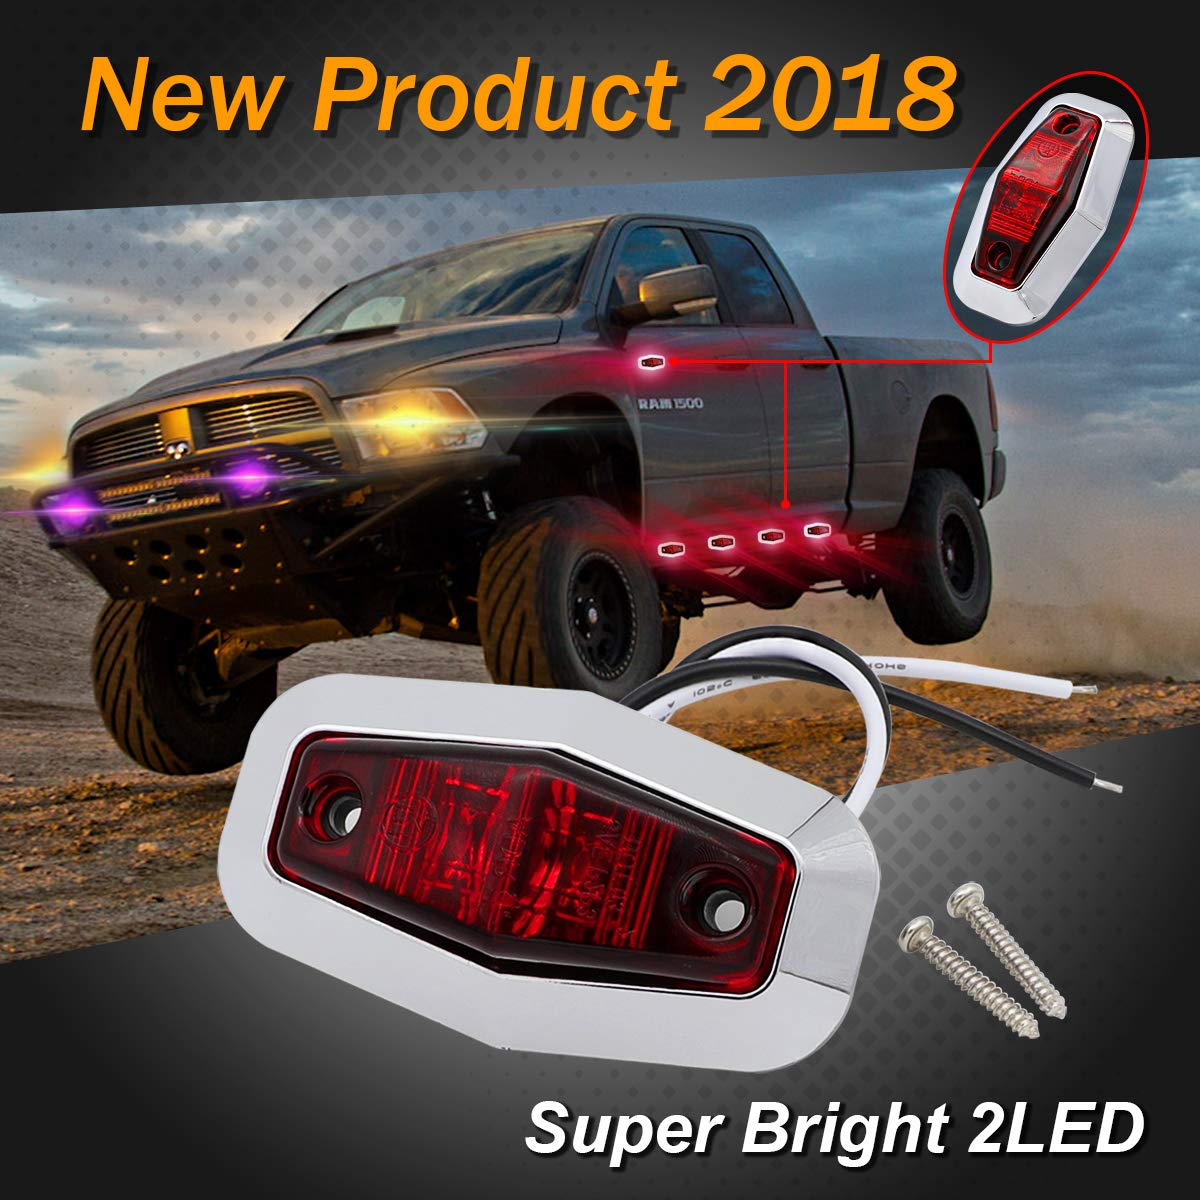 2 Red 2 White Sealed Bulb Universal Lights Side Marker LED Clearance Lamp Surface Mount Lorry Bus Truck Trailer Boat SUV Car Van Waterproof 12v DC AA12 2.5 Inch Mini 2 Amber Meerkatt Pack of 6